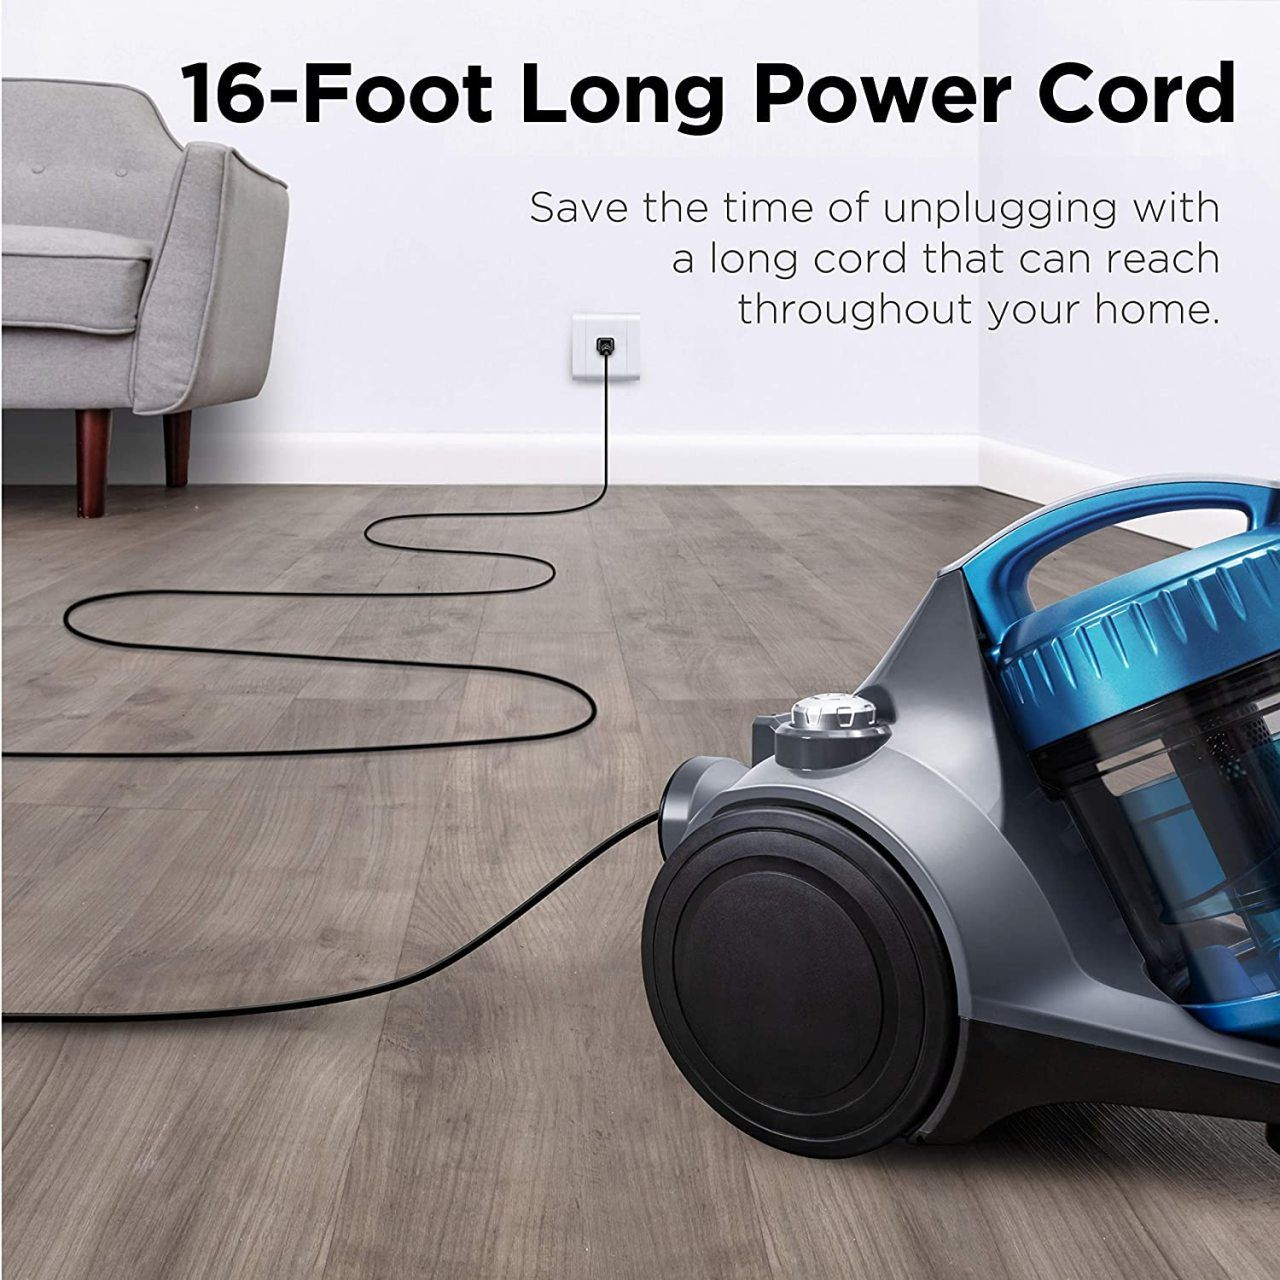 The Chisell Best Three Bagless Canister Vacuum Cleaners With Canister Vacuum Cleaner Canister Vacuum Vacuum Cleaner